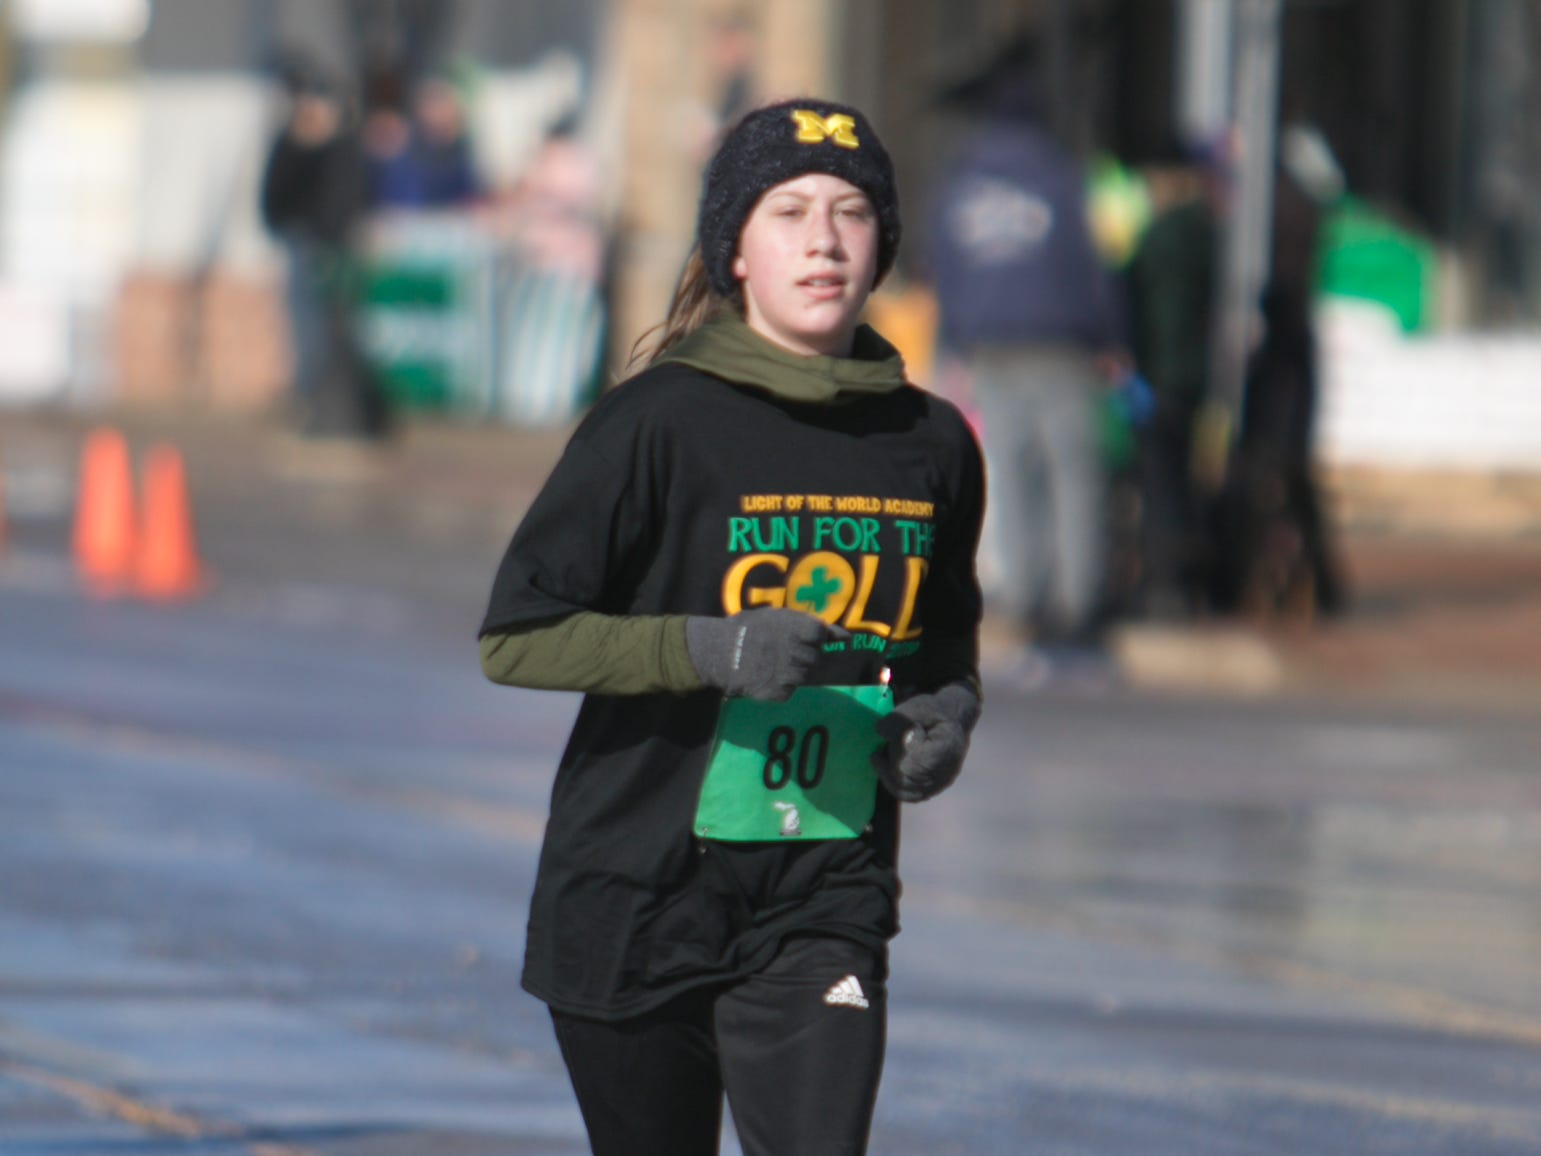 14-year-old Emma Moore, a Pinckney High School freshman, was the first female finisher of the Run for the Gold 5k Saturday, March 16, 2019.